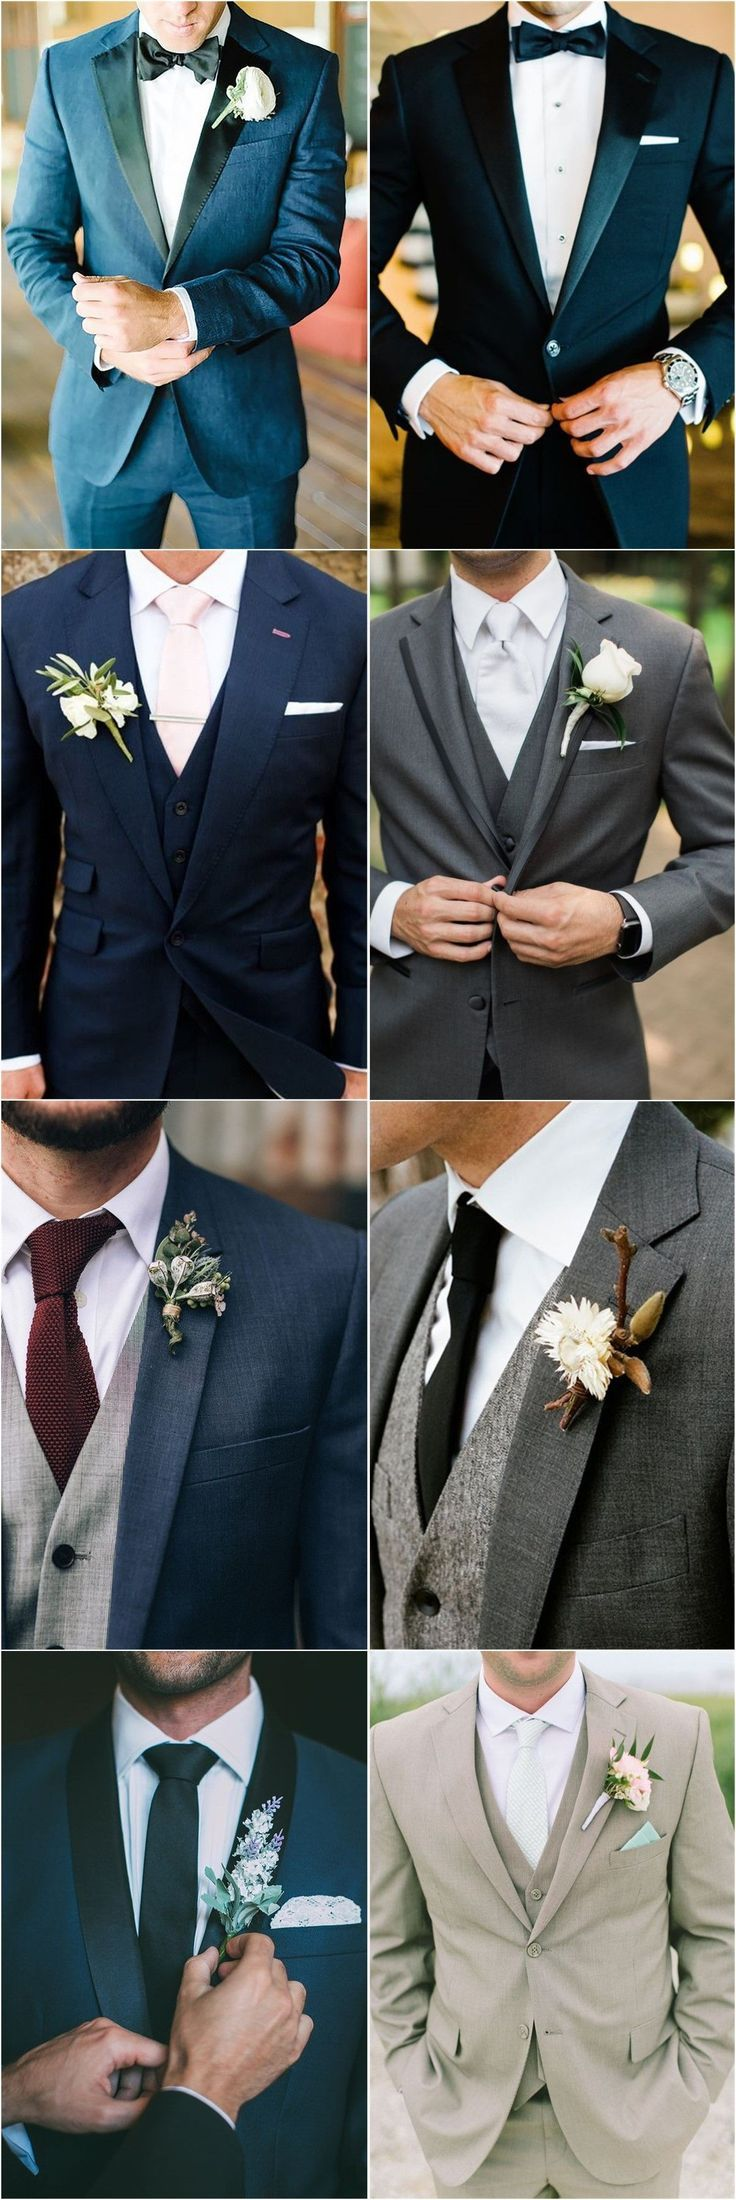 36 Groom Suit That Express Your Unique Styles and Personalities